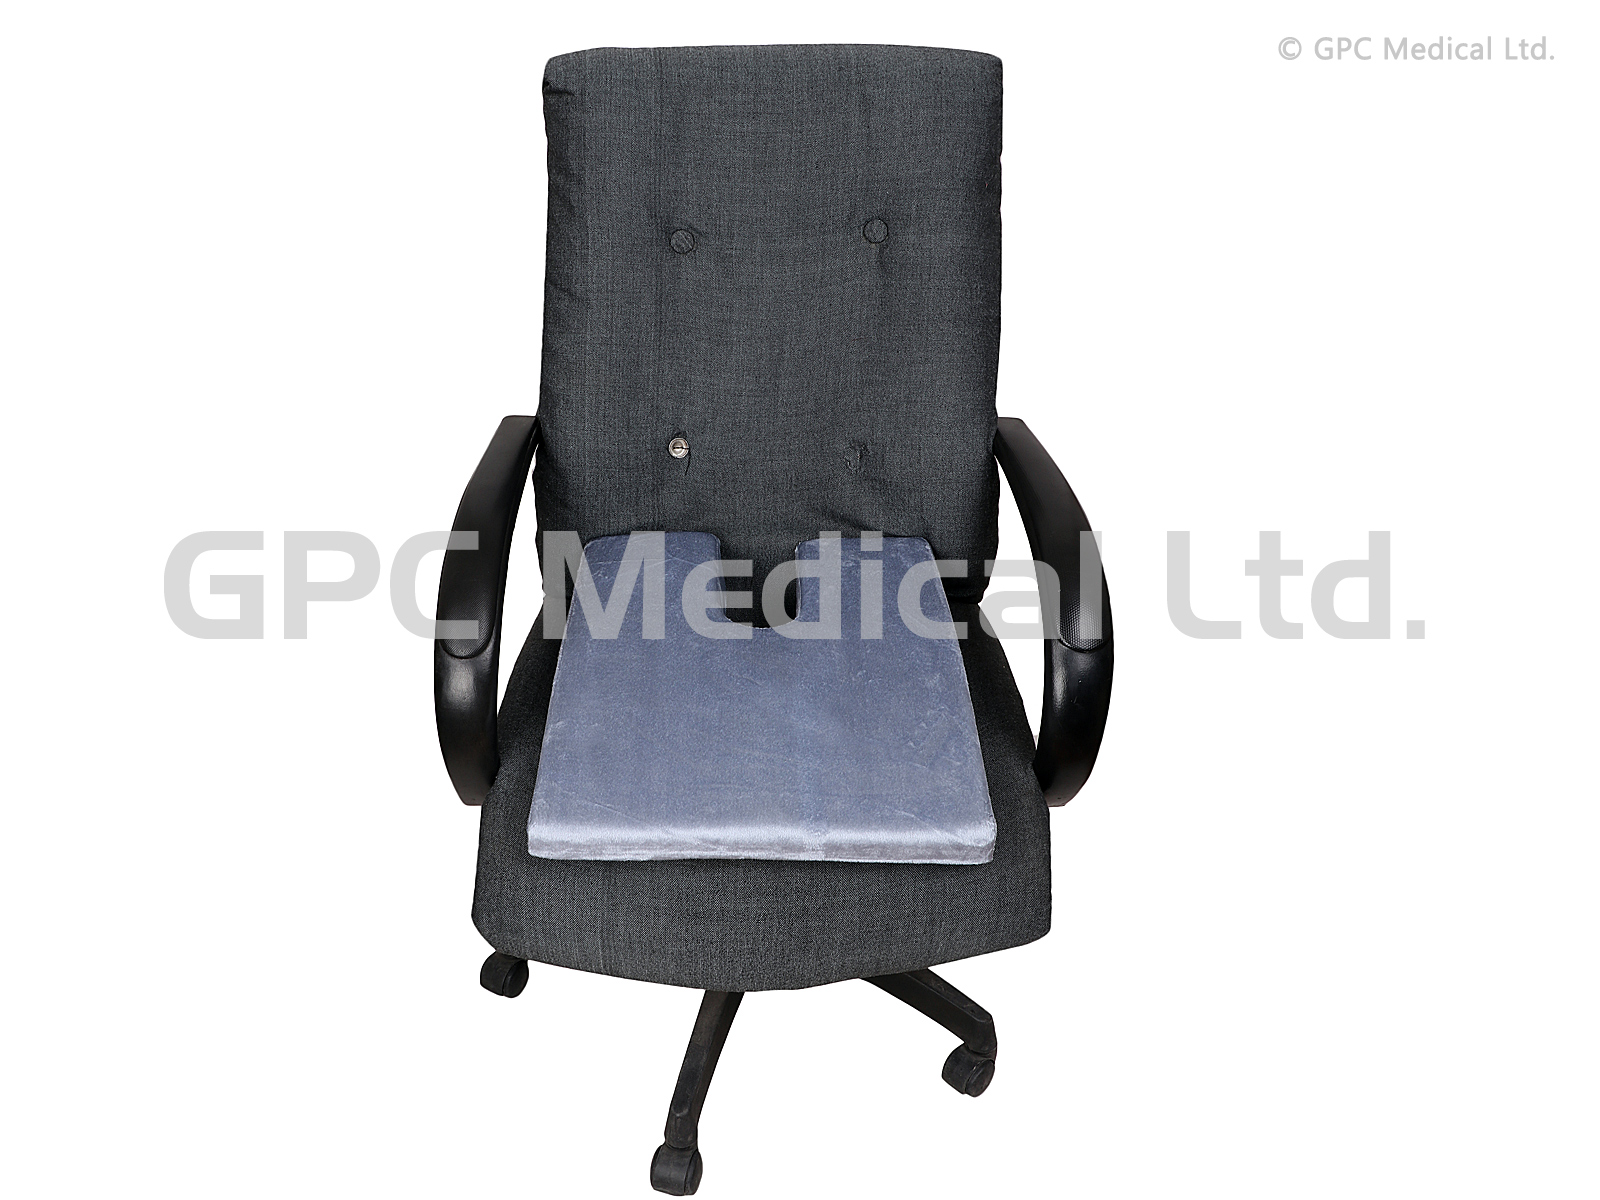 Orthopaedic Coccyx Wedge Seat